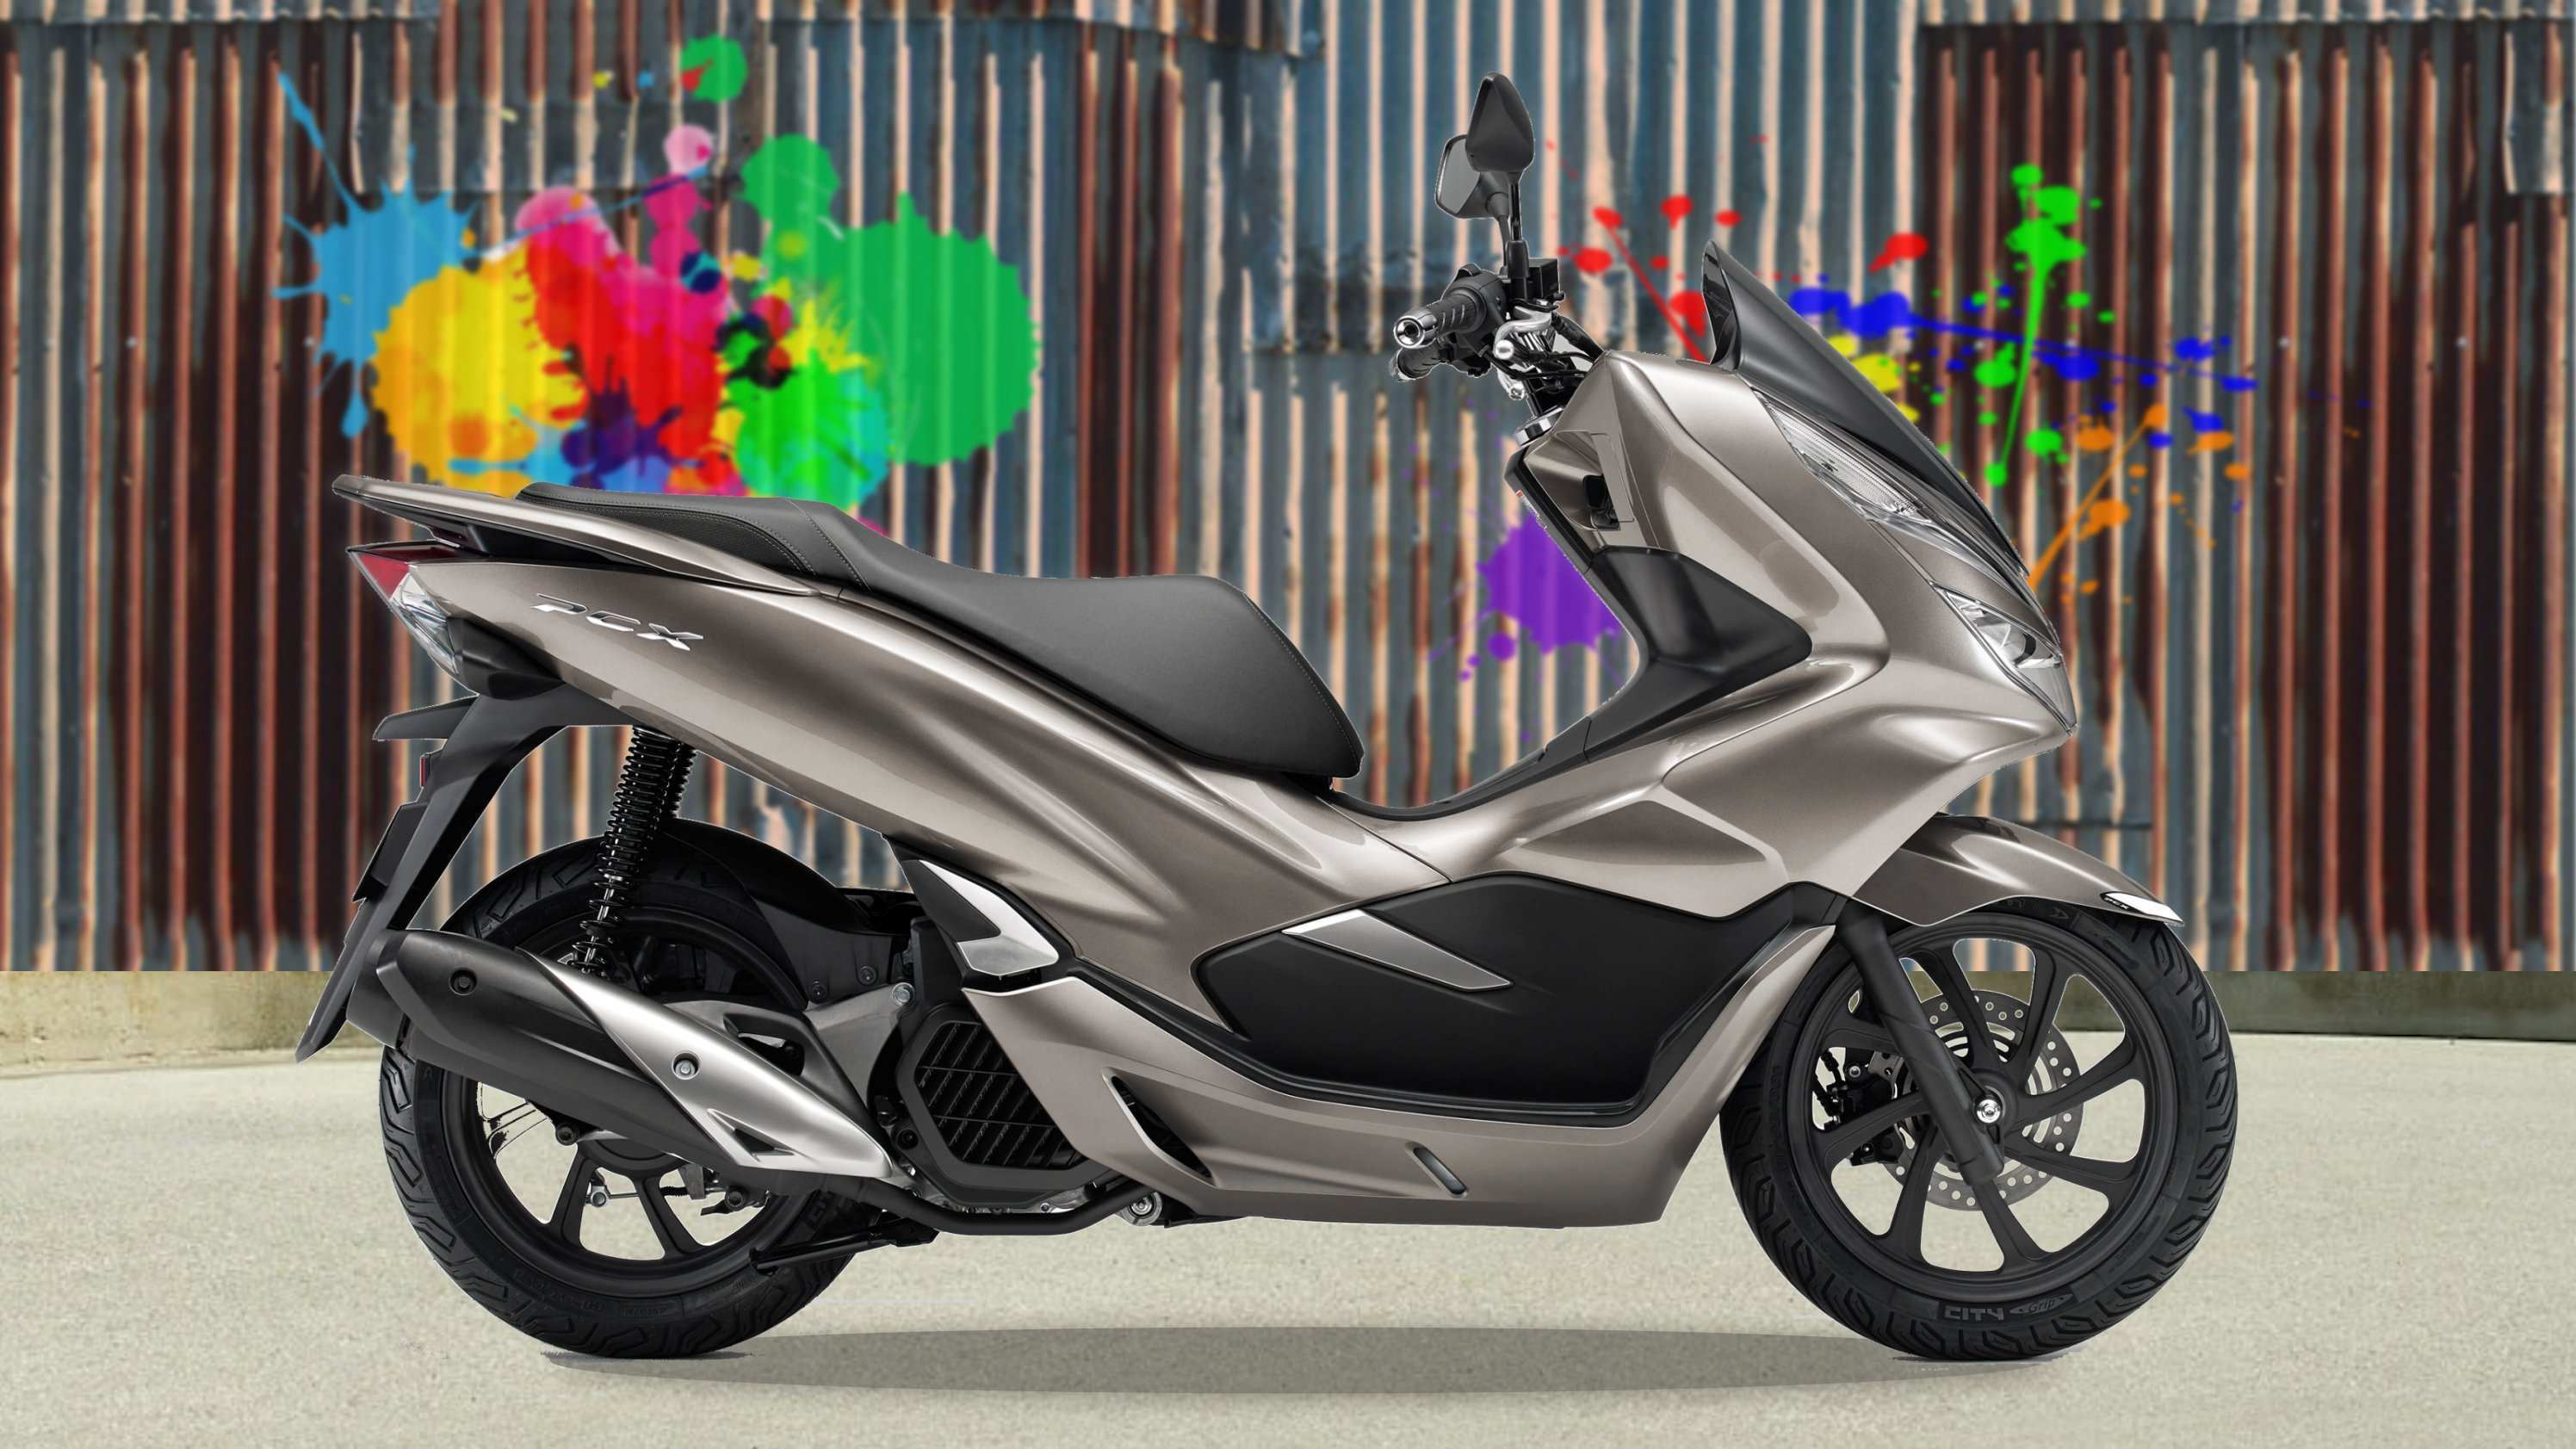 41 Concept of New 2019 Honda Pcx150 Redesign Reviews with New 2019 Honda Pcx150 Redesign